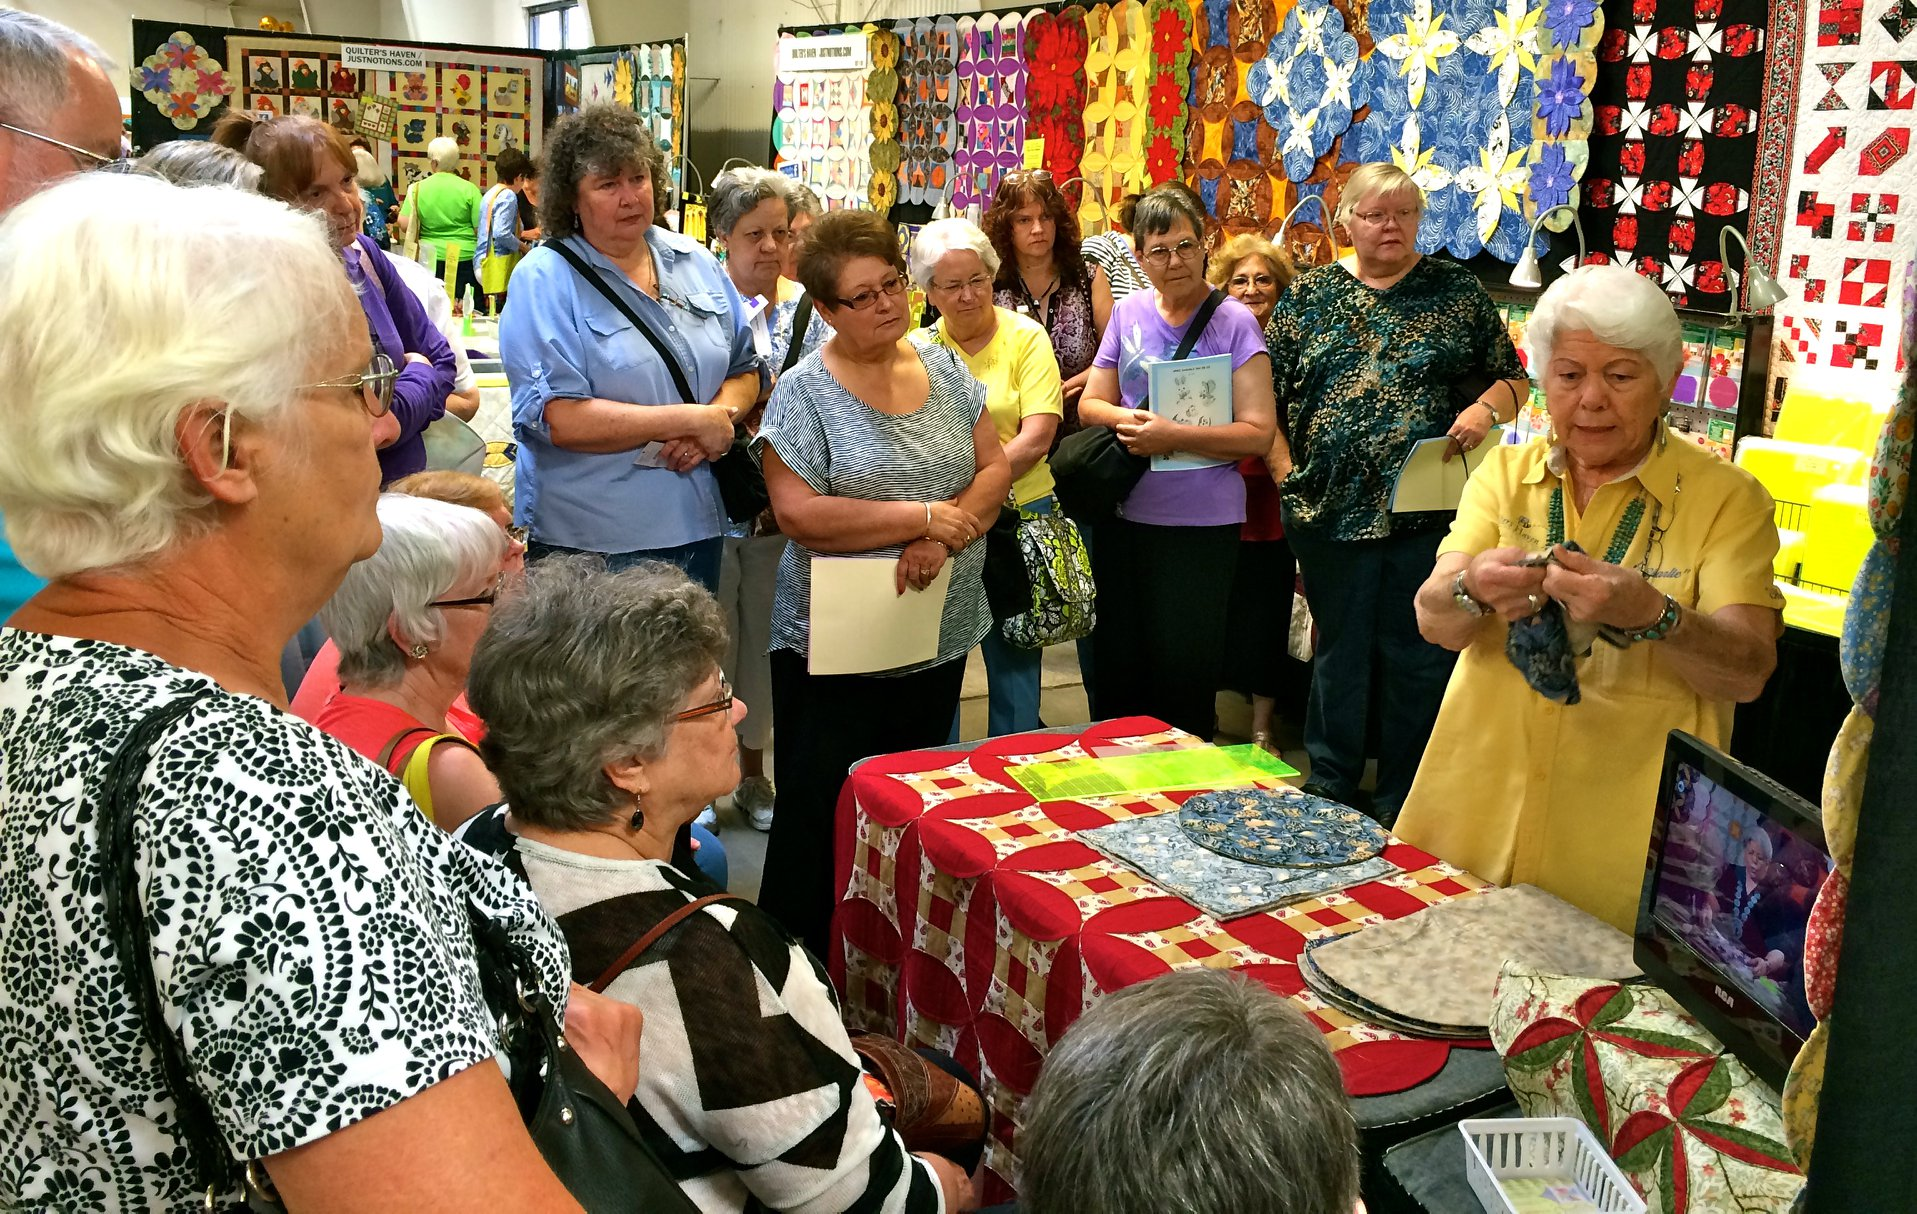 Quilt, Craft & Sewing Material on Display